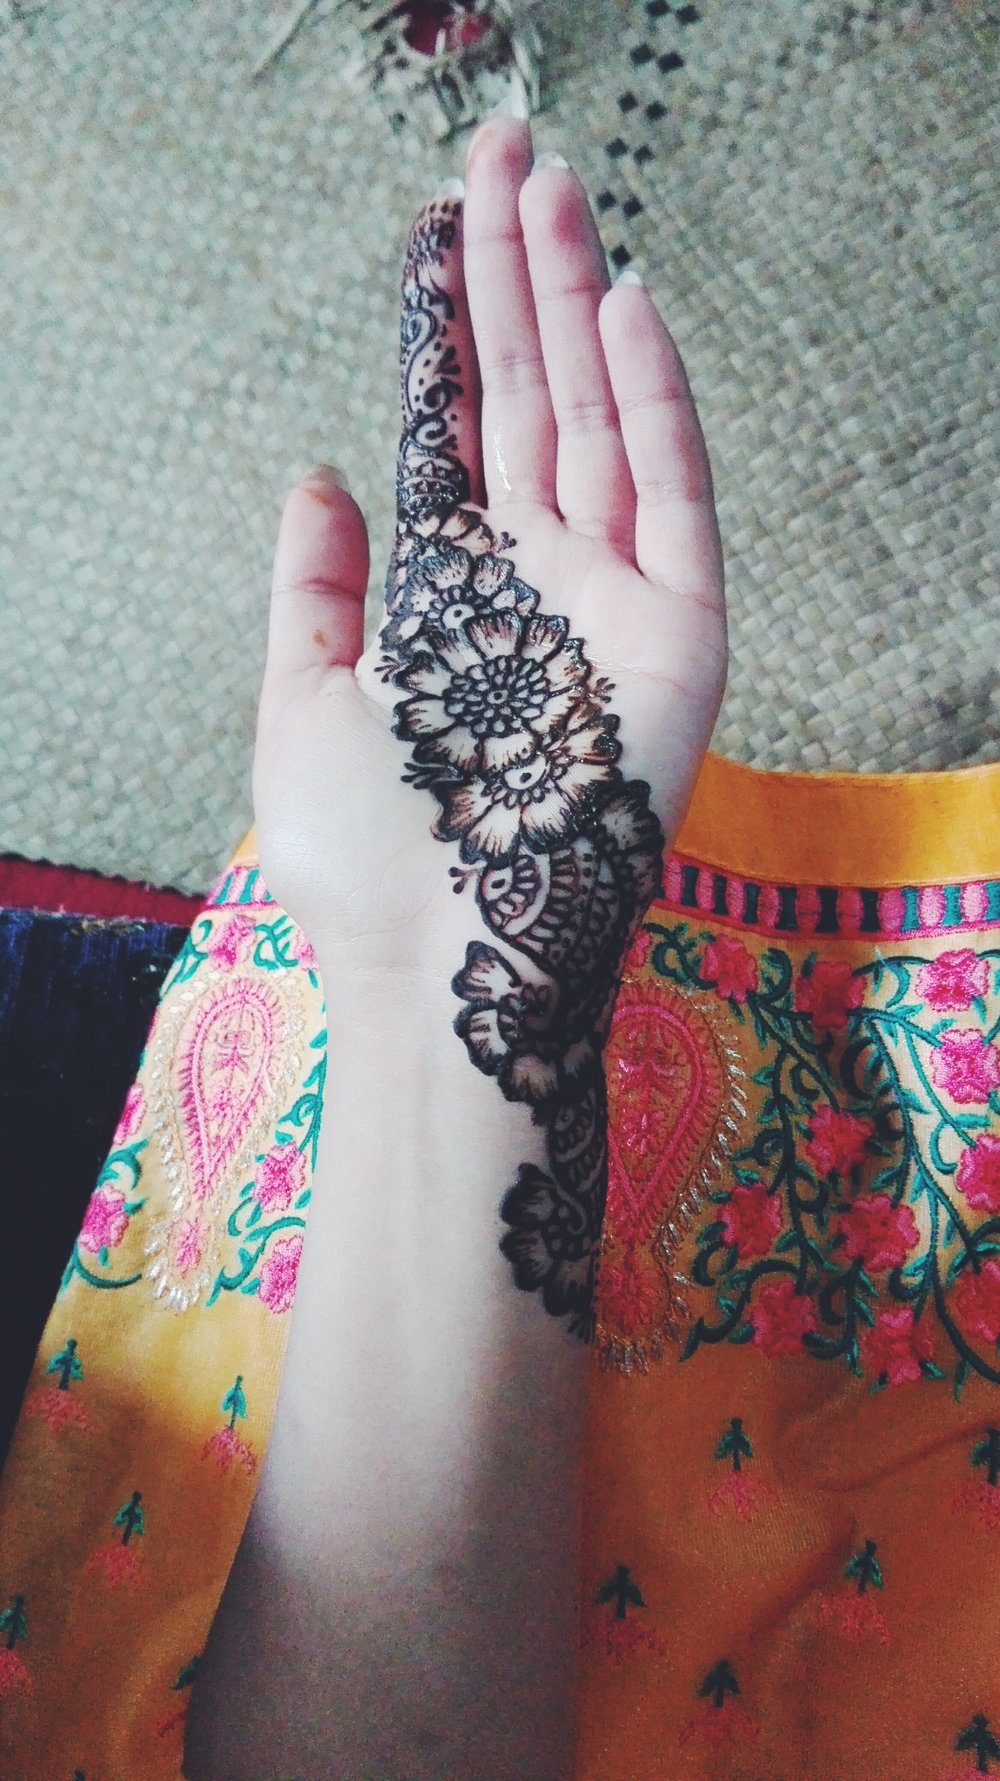 Mehndi   First time in ages I didn't have any designs as reference and was put on the spot to do henna on the hands of many unknown guests so literally did the same one for everyone. Love how it turned out, hadn't done flower inspired patterns for a while. If you'd like to get your henna done for any occasion then let me know :)